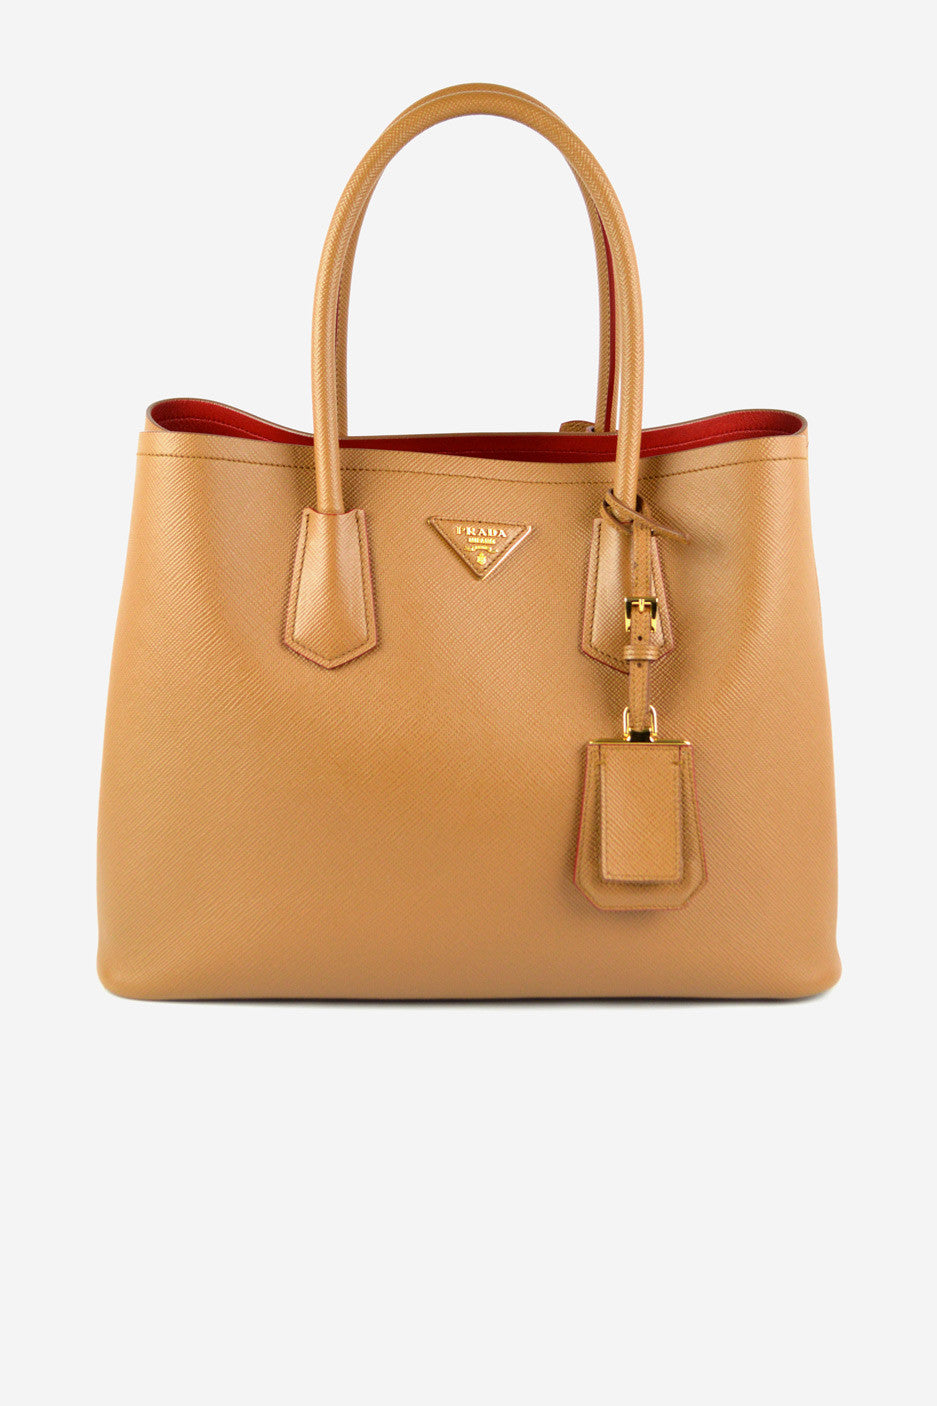 Caramel Saffiano Leather Double Tote